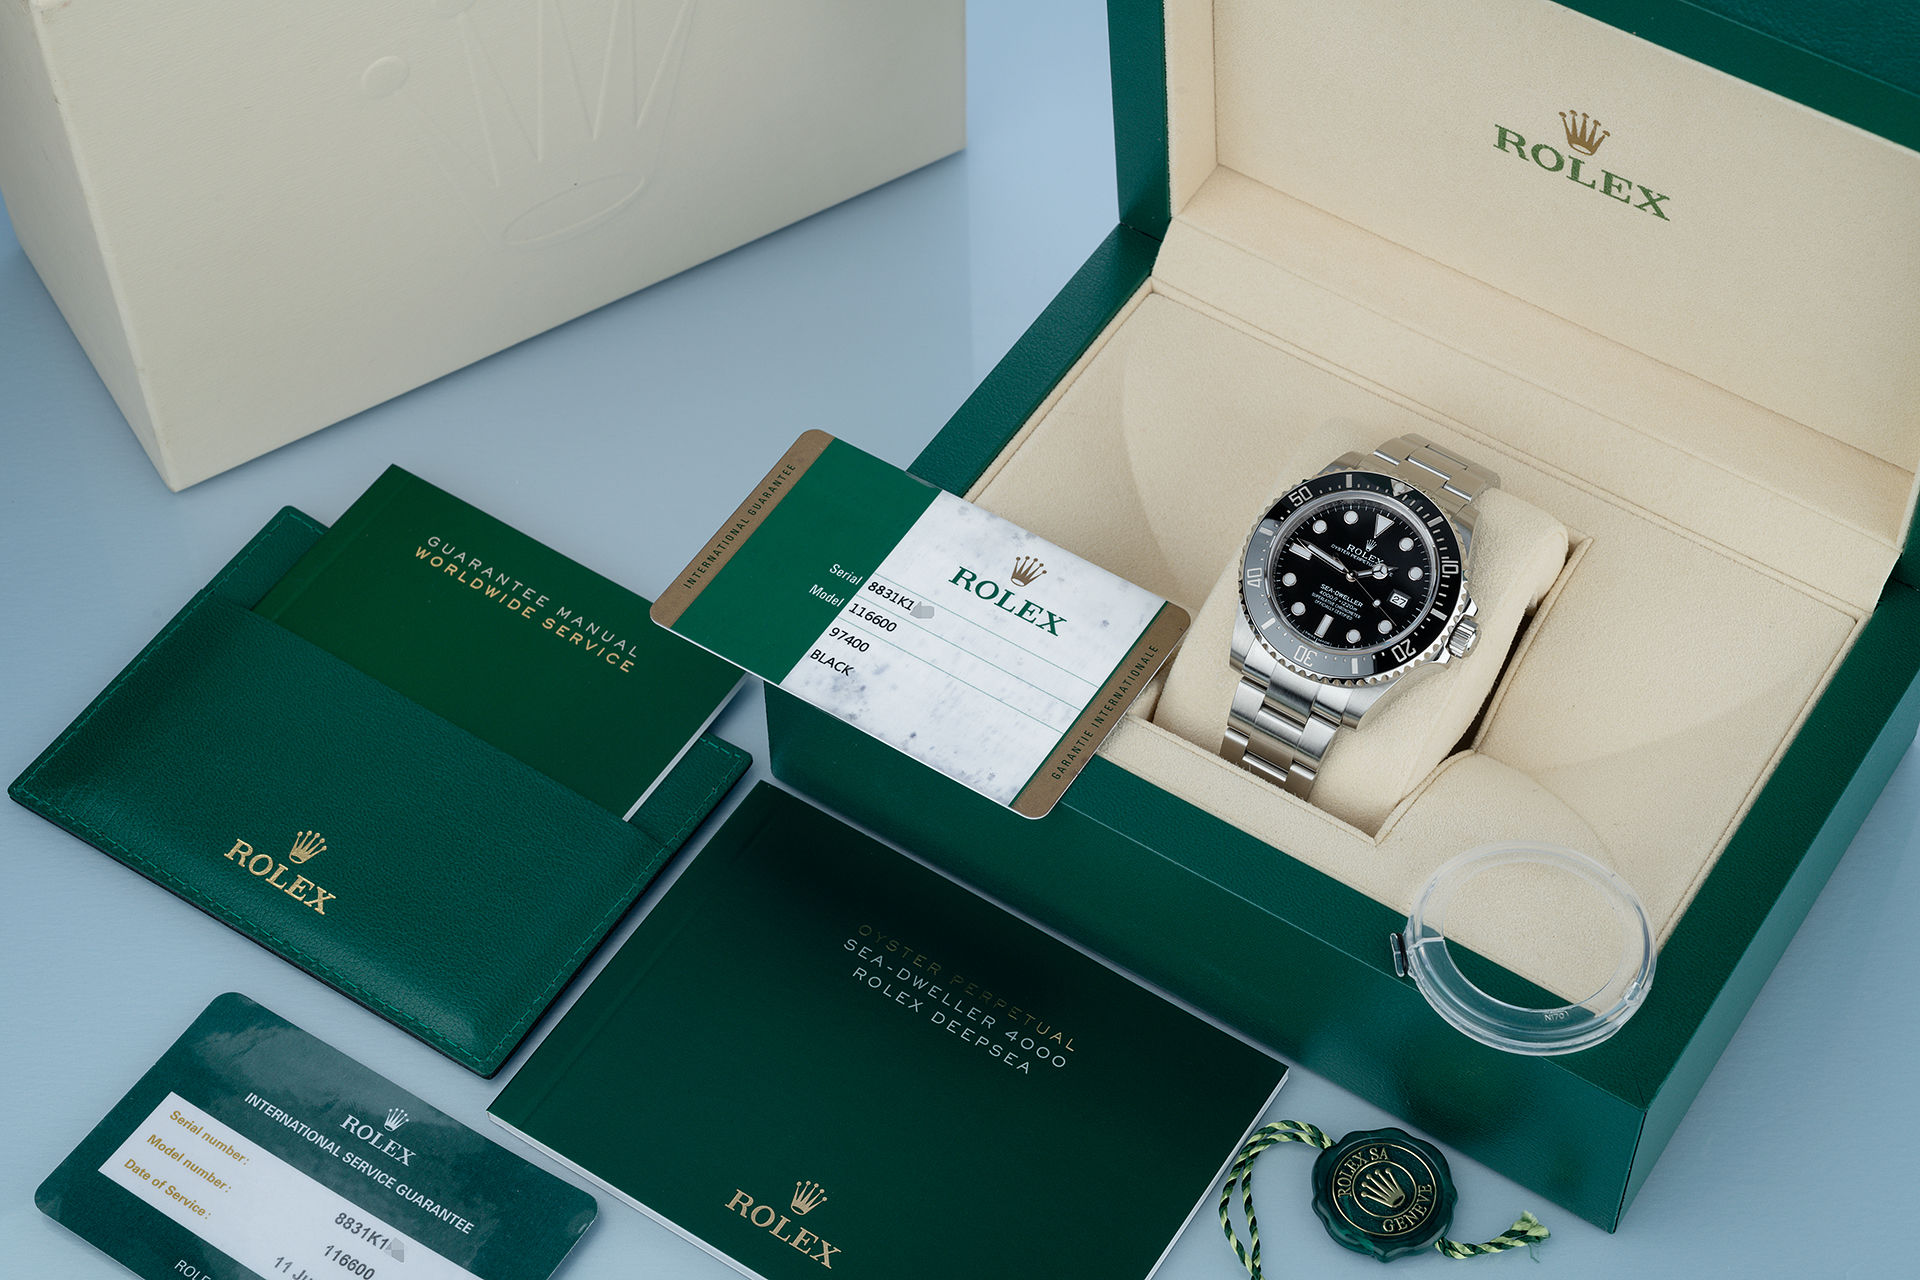 ref 116600 | Complete Set 'Under Rolex Service Warranty' | Rolex Sea-Dweller 4000